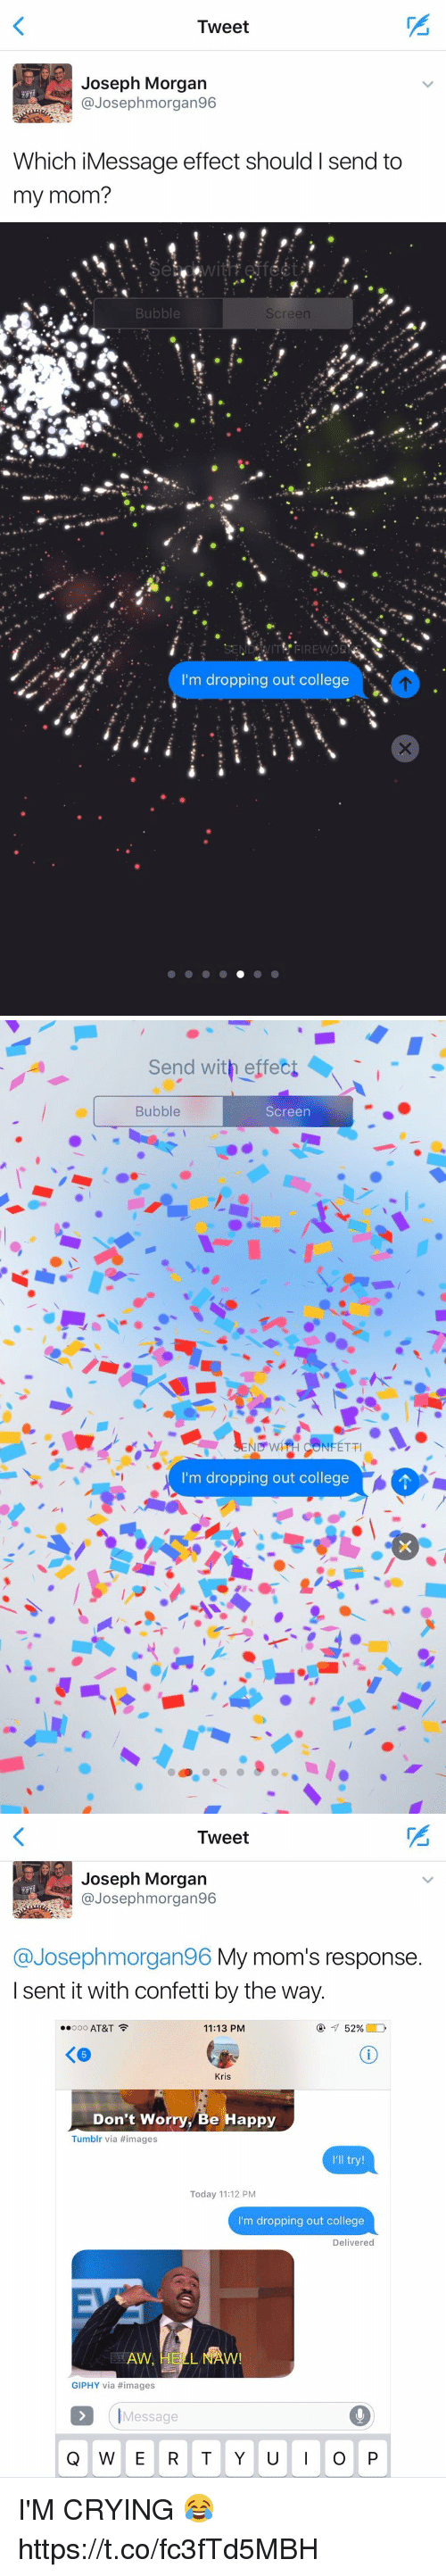 "Ÿ "": Tweet  Joseph Morgan  @Joseph morgan96  Which iMessage effect should I send to  my mom?   Bubble  Screen  m dropping out college   Send with effect  Bubble  Screen  ND WH NFETTI  I'm dropping out college   Tweet  Joseph Morgan  Josep hmorgan96  @Joseph morgan96 My mom's response  I sent it with confetti by the way.  Ooo AT&T  52%  11:13 PM  Kris  Don't Worry, Be Happy  Tumblr via #images  I'll try!  Today 11:12 PM  I'm dropping out college  Delivered  GIPHY via images  Message  Q W E R T Y U  I O P I'M CRYING 😂 https://t.co/fc3fTd5MBH"